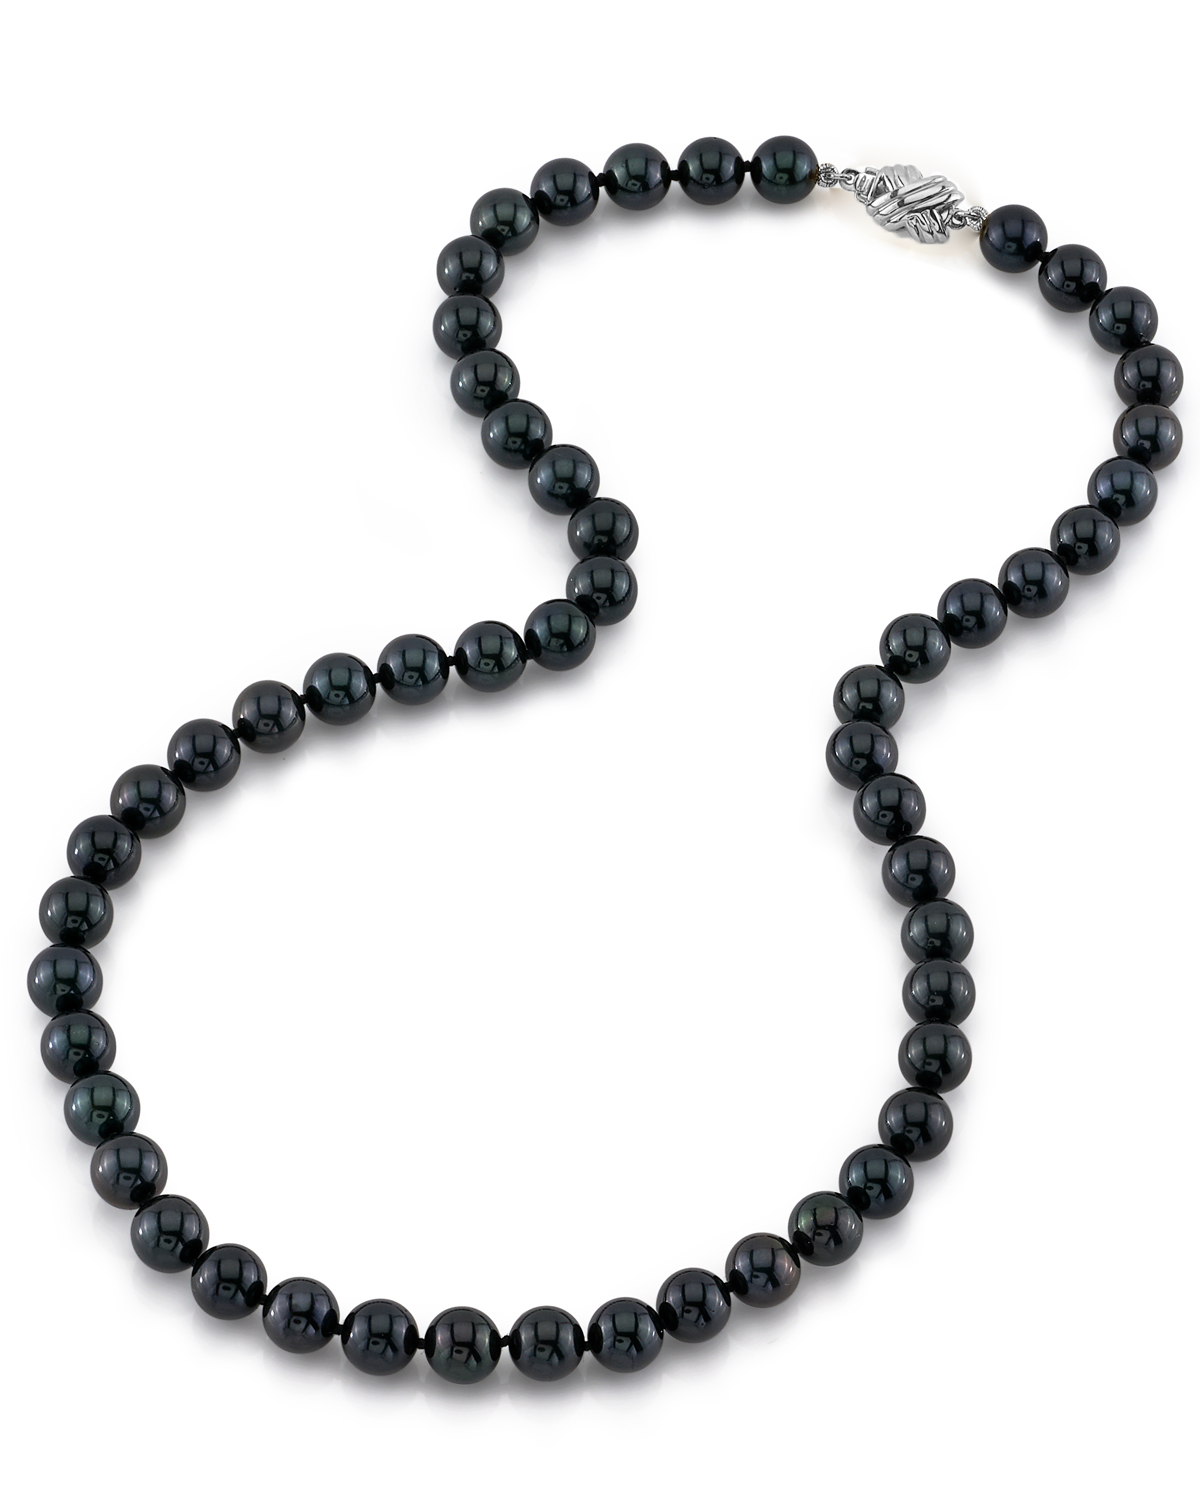 7.5-8.0mm Japanese Akoya Black Pearl Necklace- AAA Quality